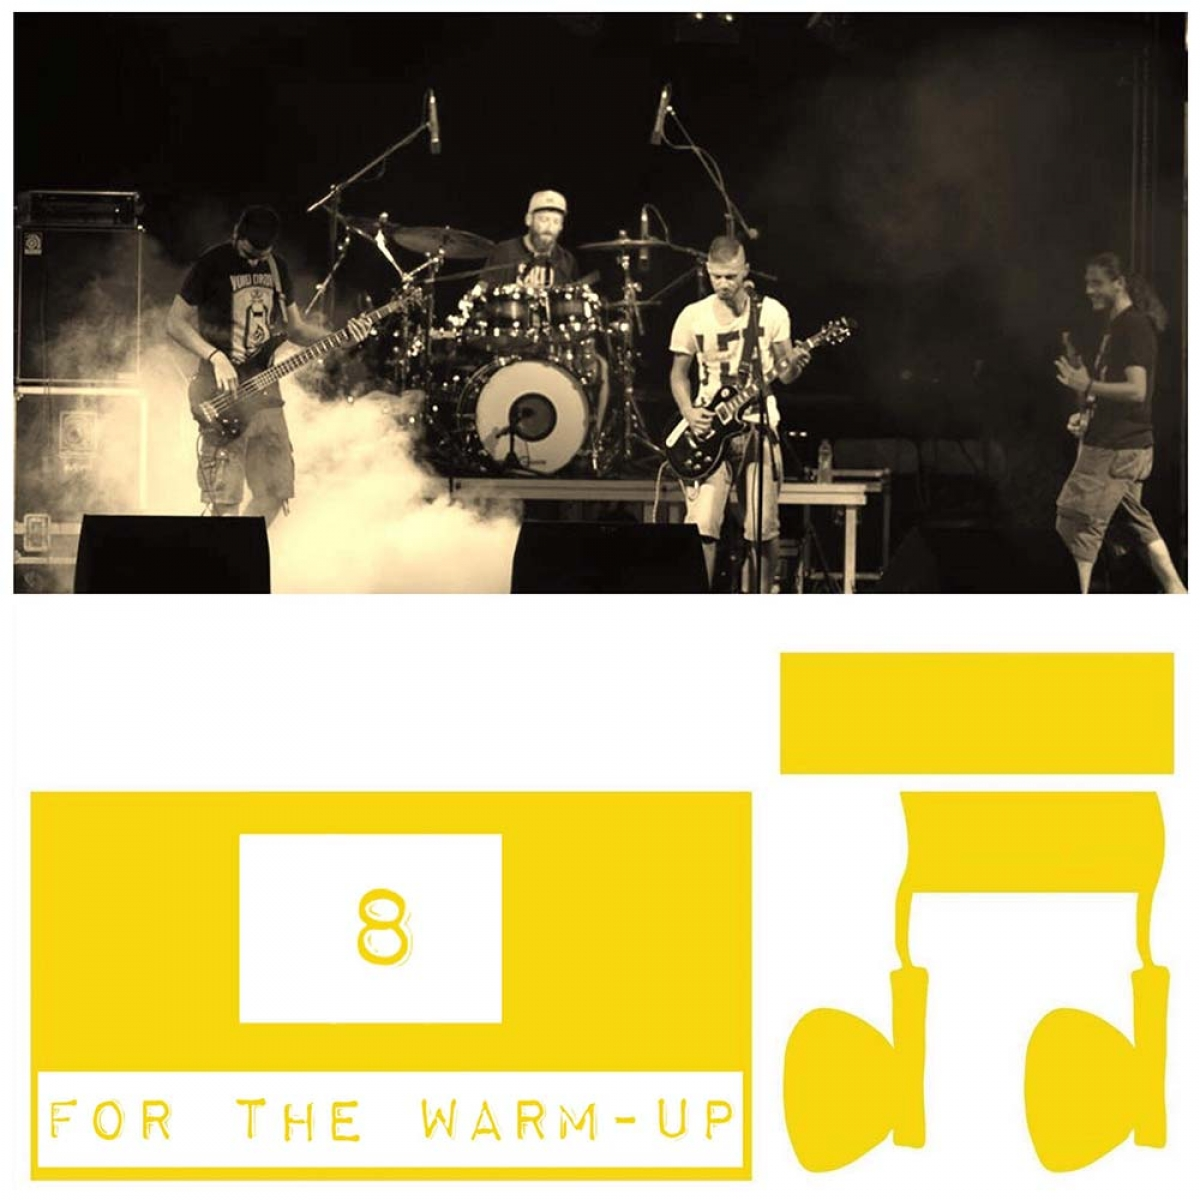 8 For The Warm-Up: Salto Mortale